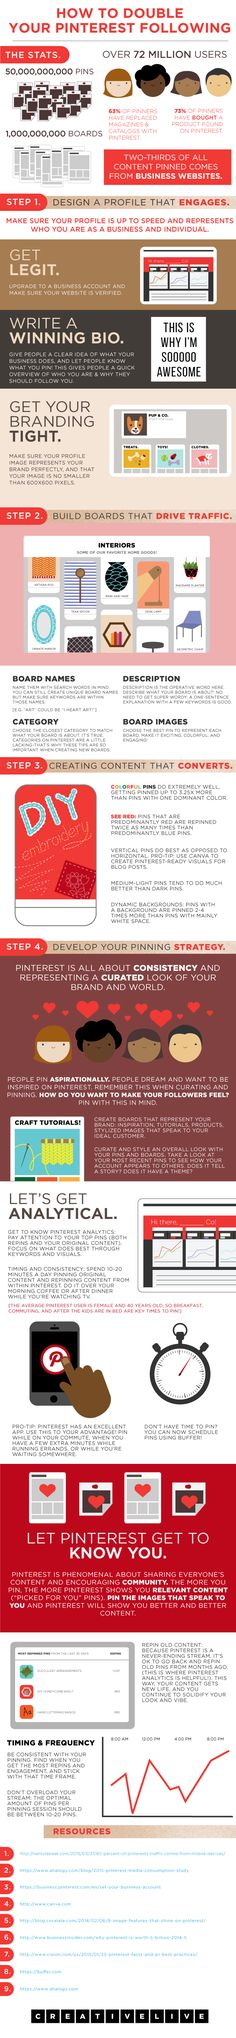 How to Double Your Pinterest Following - #infographic